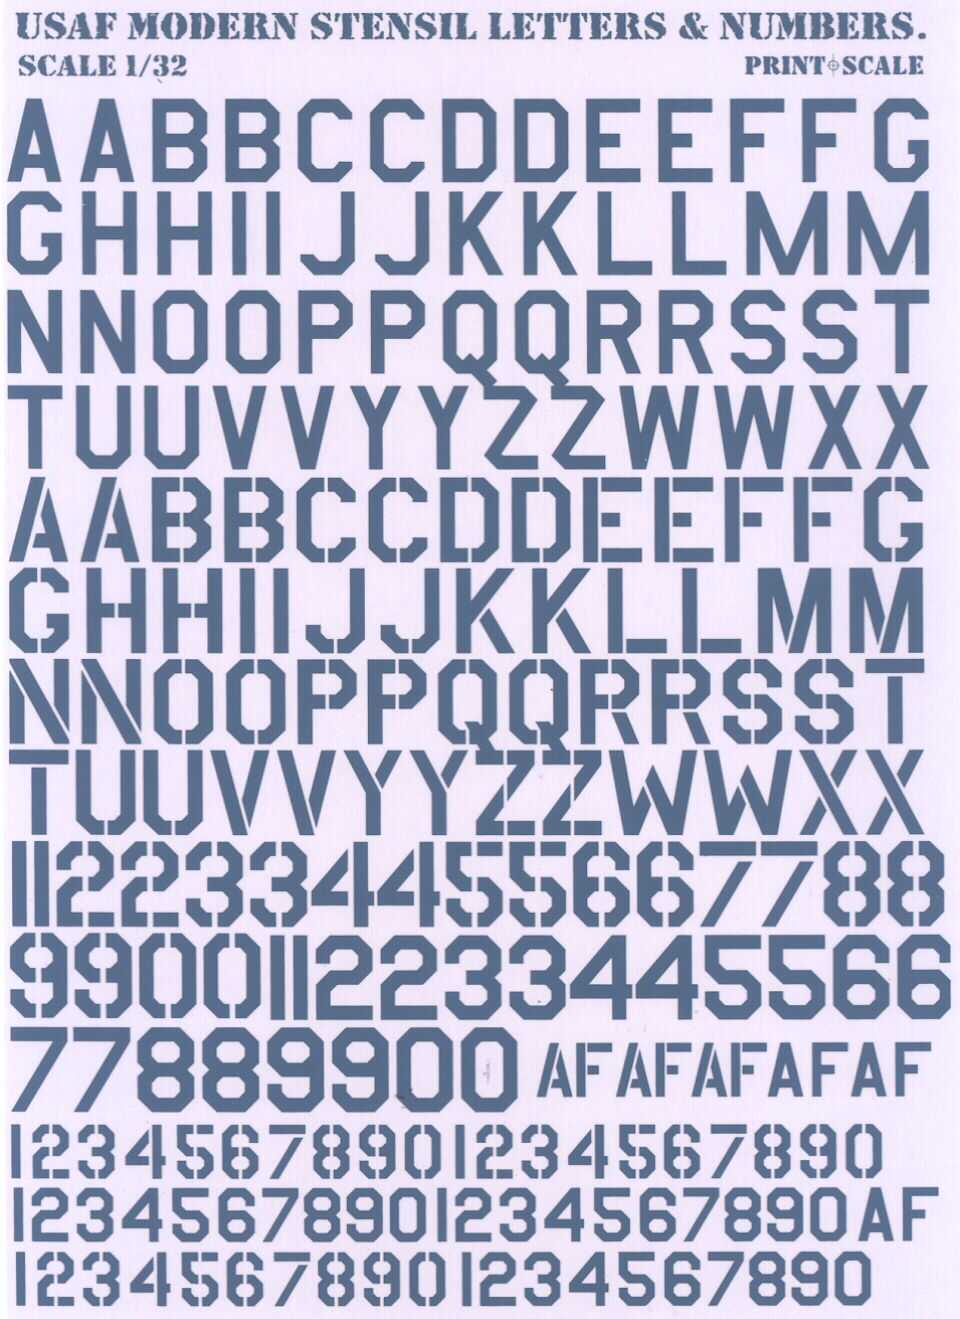 Print Scale Decals US AIR FORCE MODERN STENCIL LETTERS - Decal numbers lettersusaf modern stencil lettersnumbers whitedecal